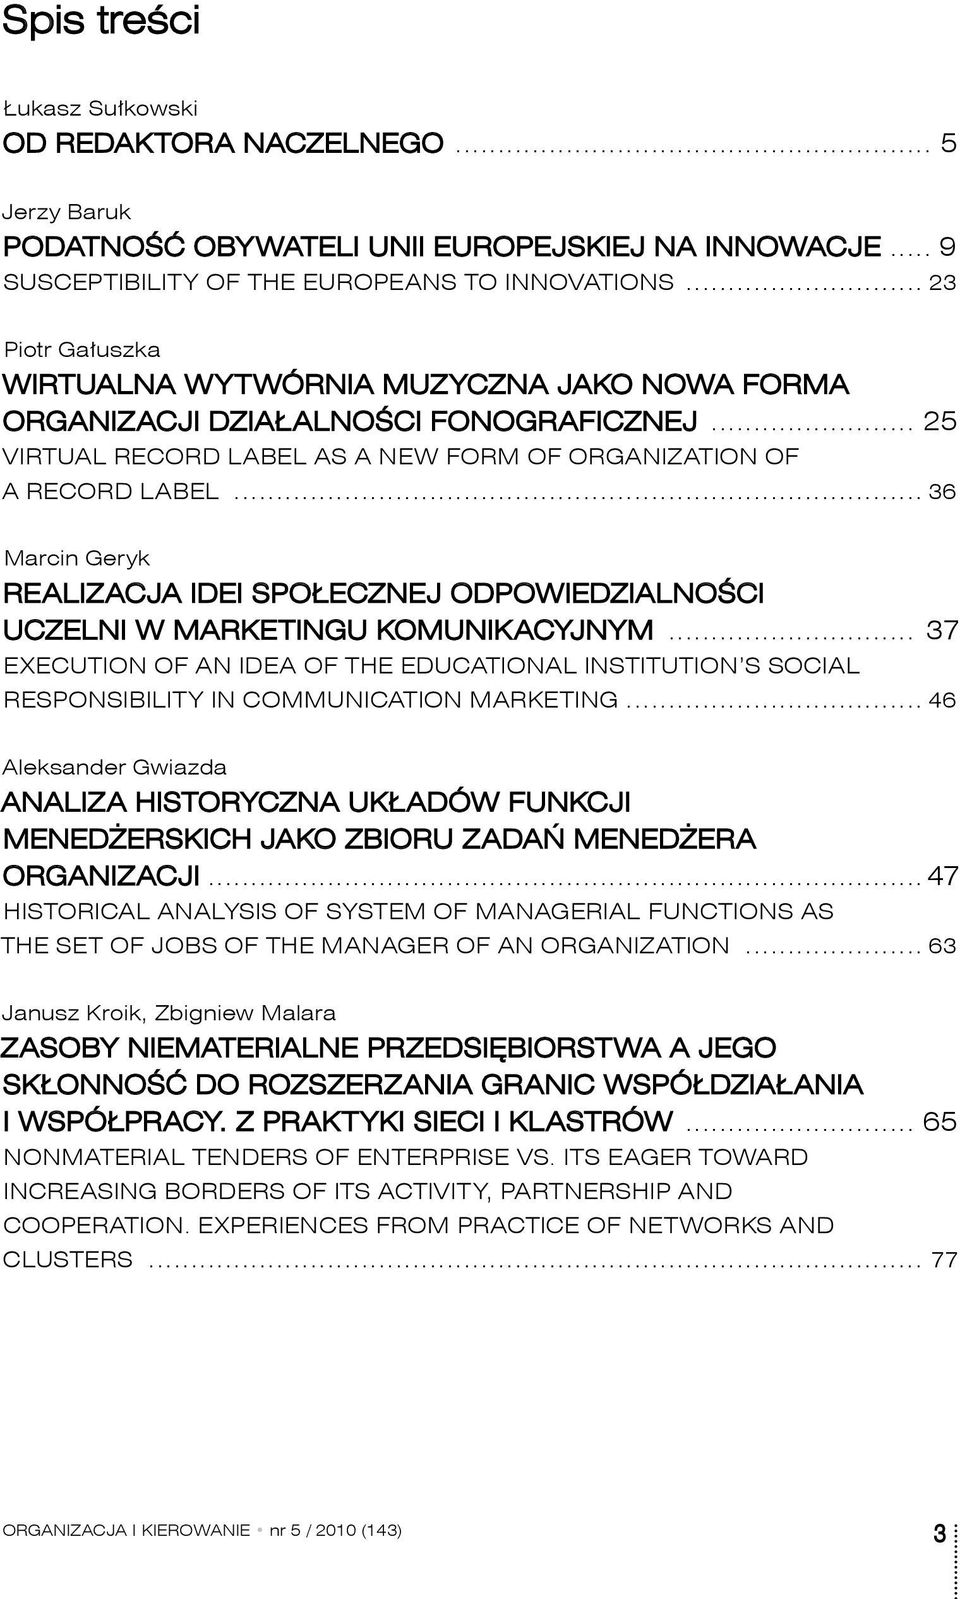 odpowiedzialności uczelni w marketingu komunikacyjnym 37 Execution of an idea of the educational institution s social responsibility in communication marketing 46 Aleksander Gwiazda Analiza